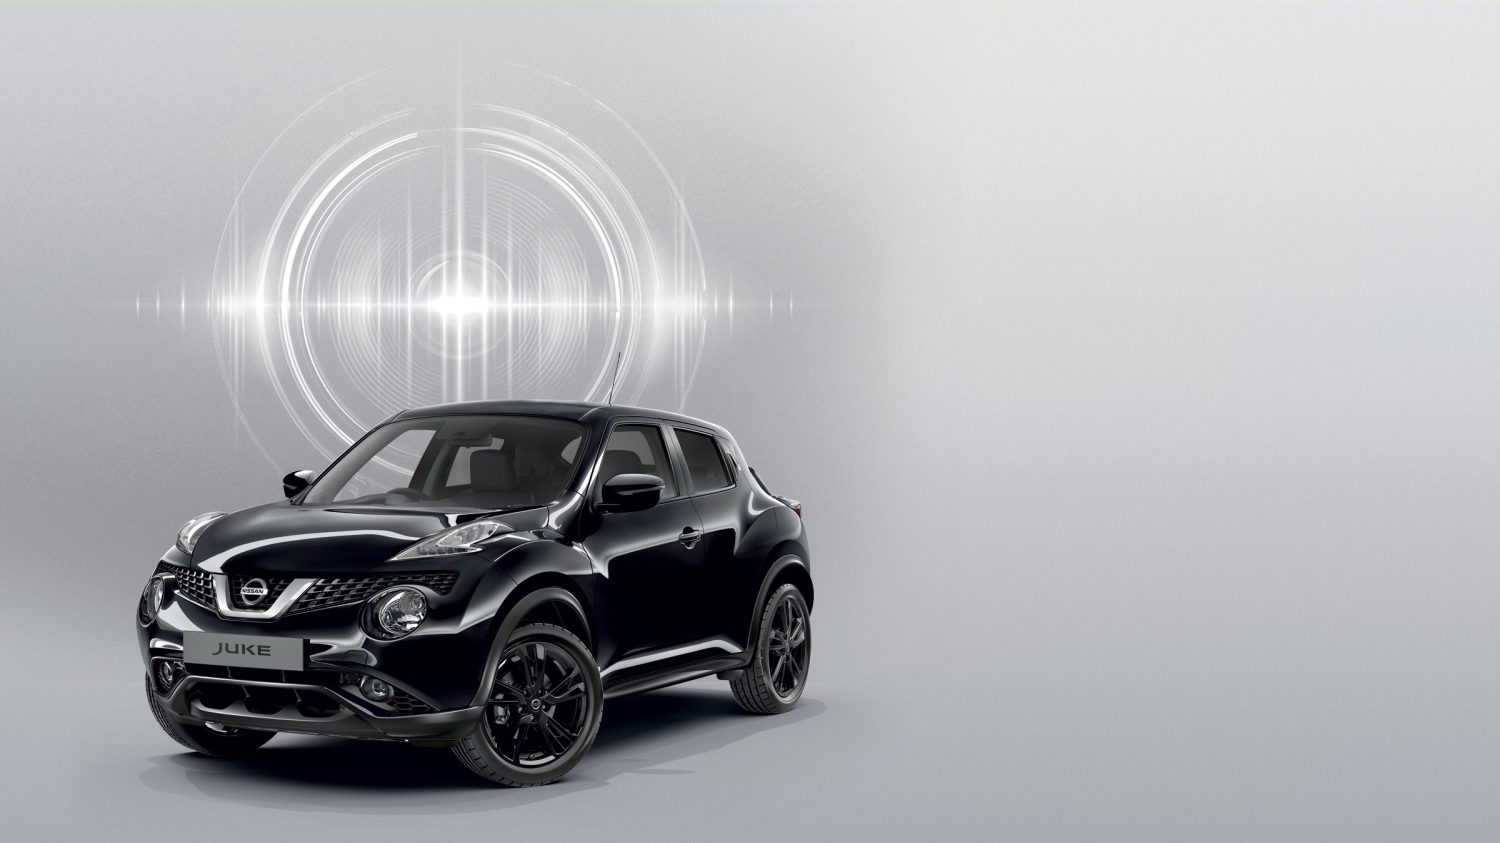 Compact & mini SUV performance - Focal comfort made for Juke | Nissan Juke